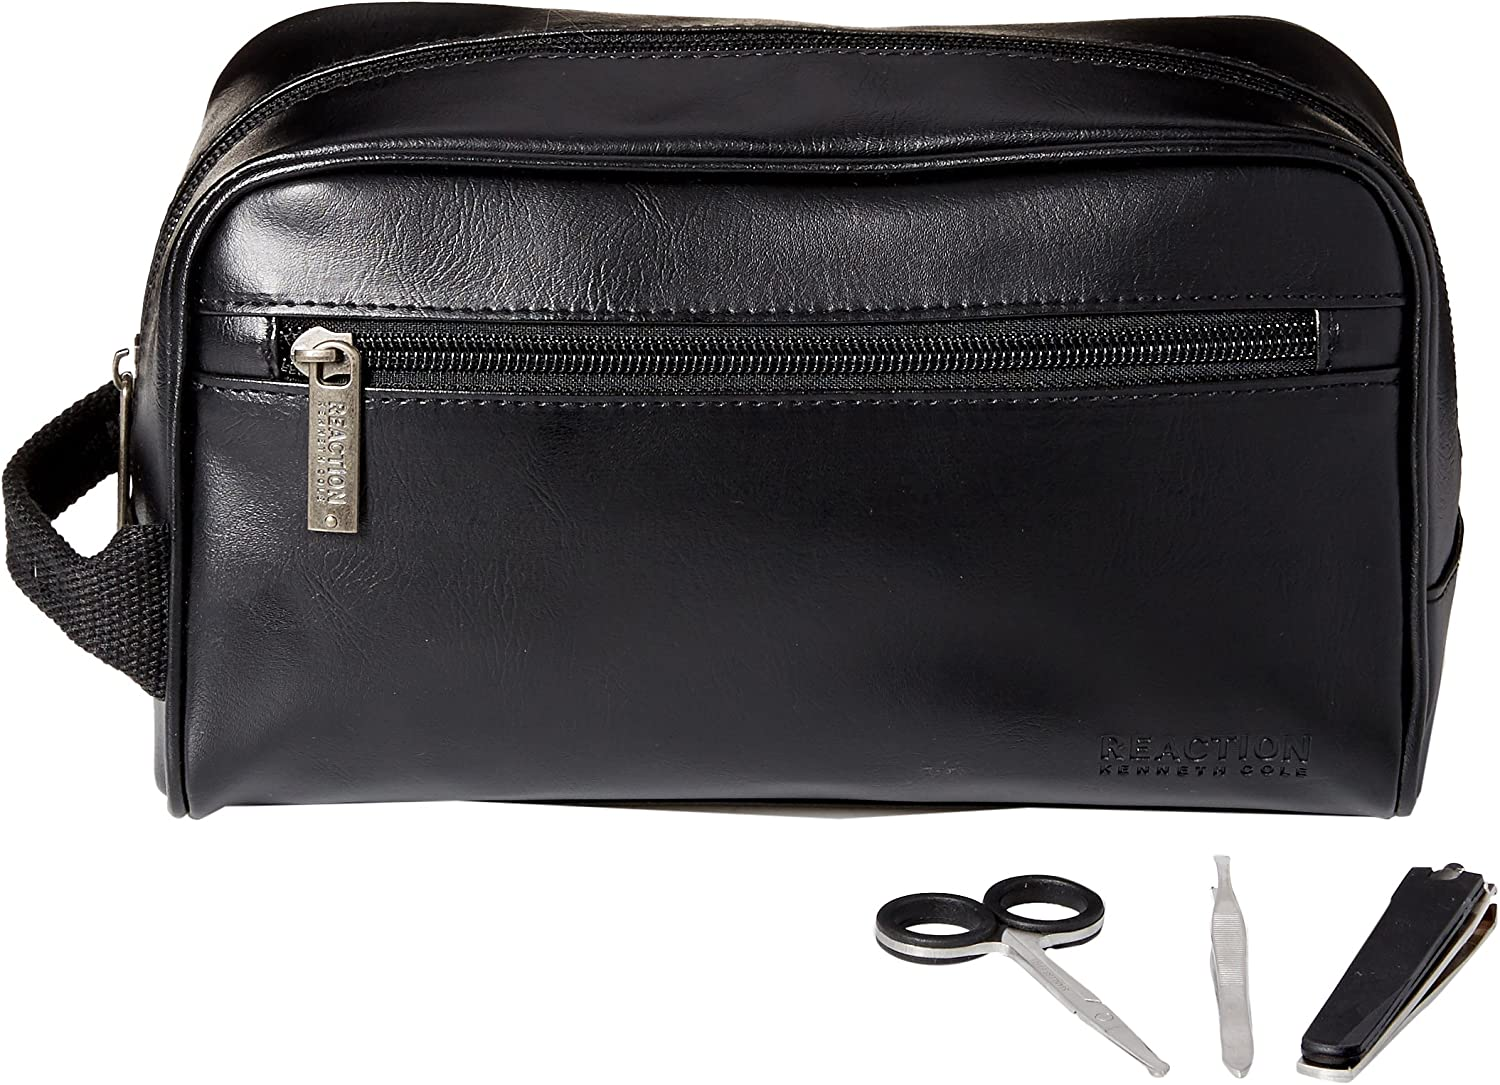 Kenneth Cole REACTION Men s Travel Toiletry Bag Shaving Kit With 3 Piece Manicure Set